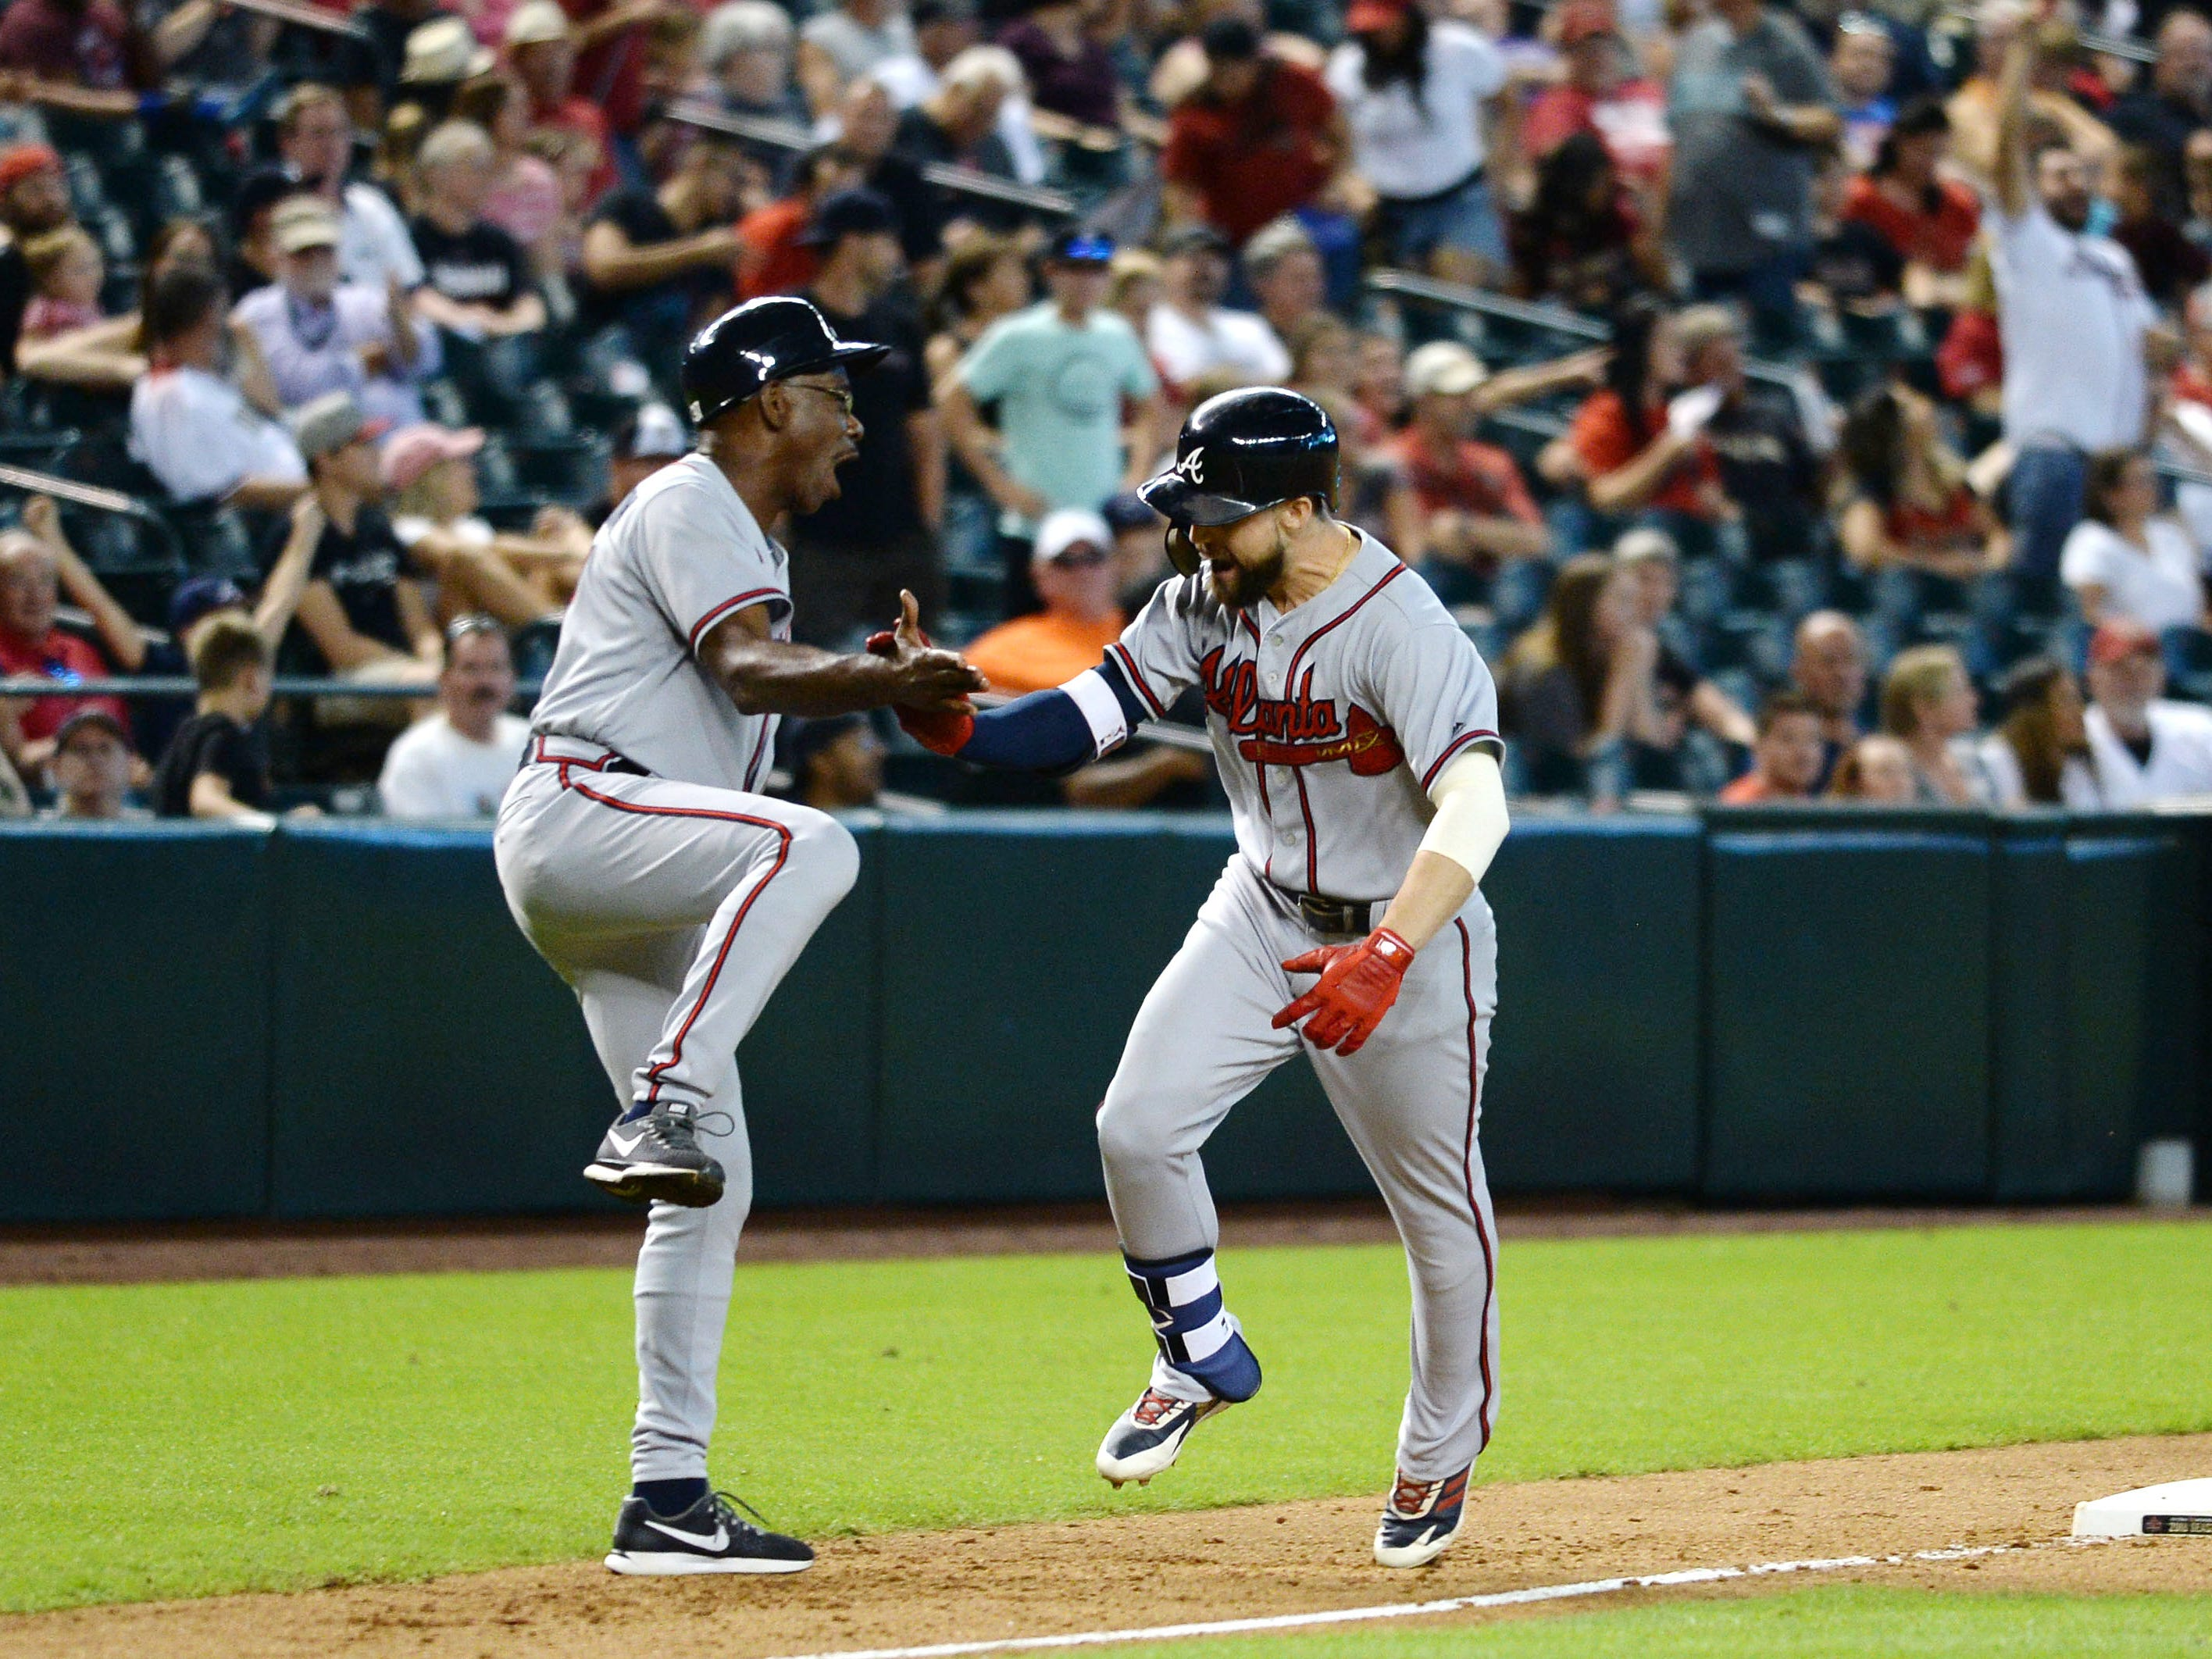 Sep 9, 2018; Phoenix, AZ, USA; Atlanta Braves center fielder Ender Inciarte (right) slaps hands with third base coach Ron Washington (left) after hitting a three run home run against the Arizona Diamondbacks during the ninth inning at Chase Field.